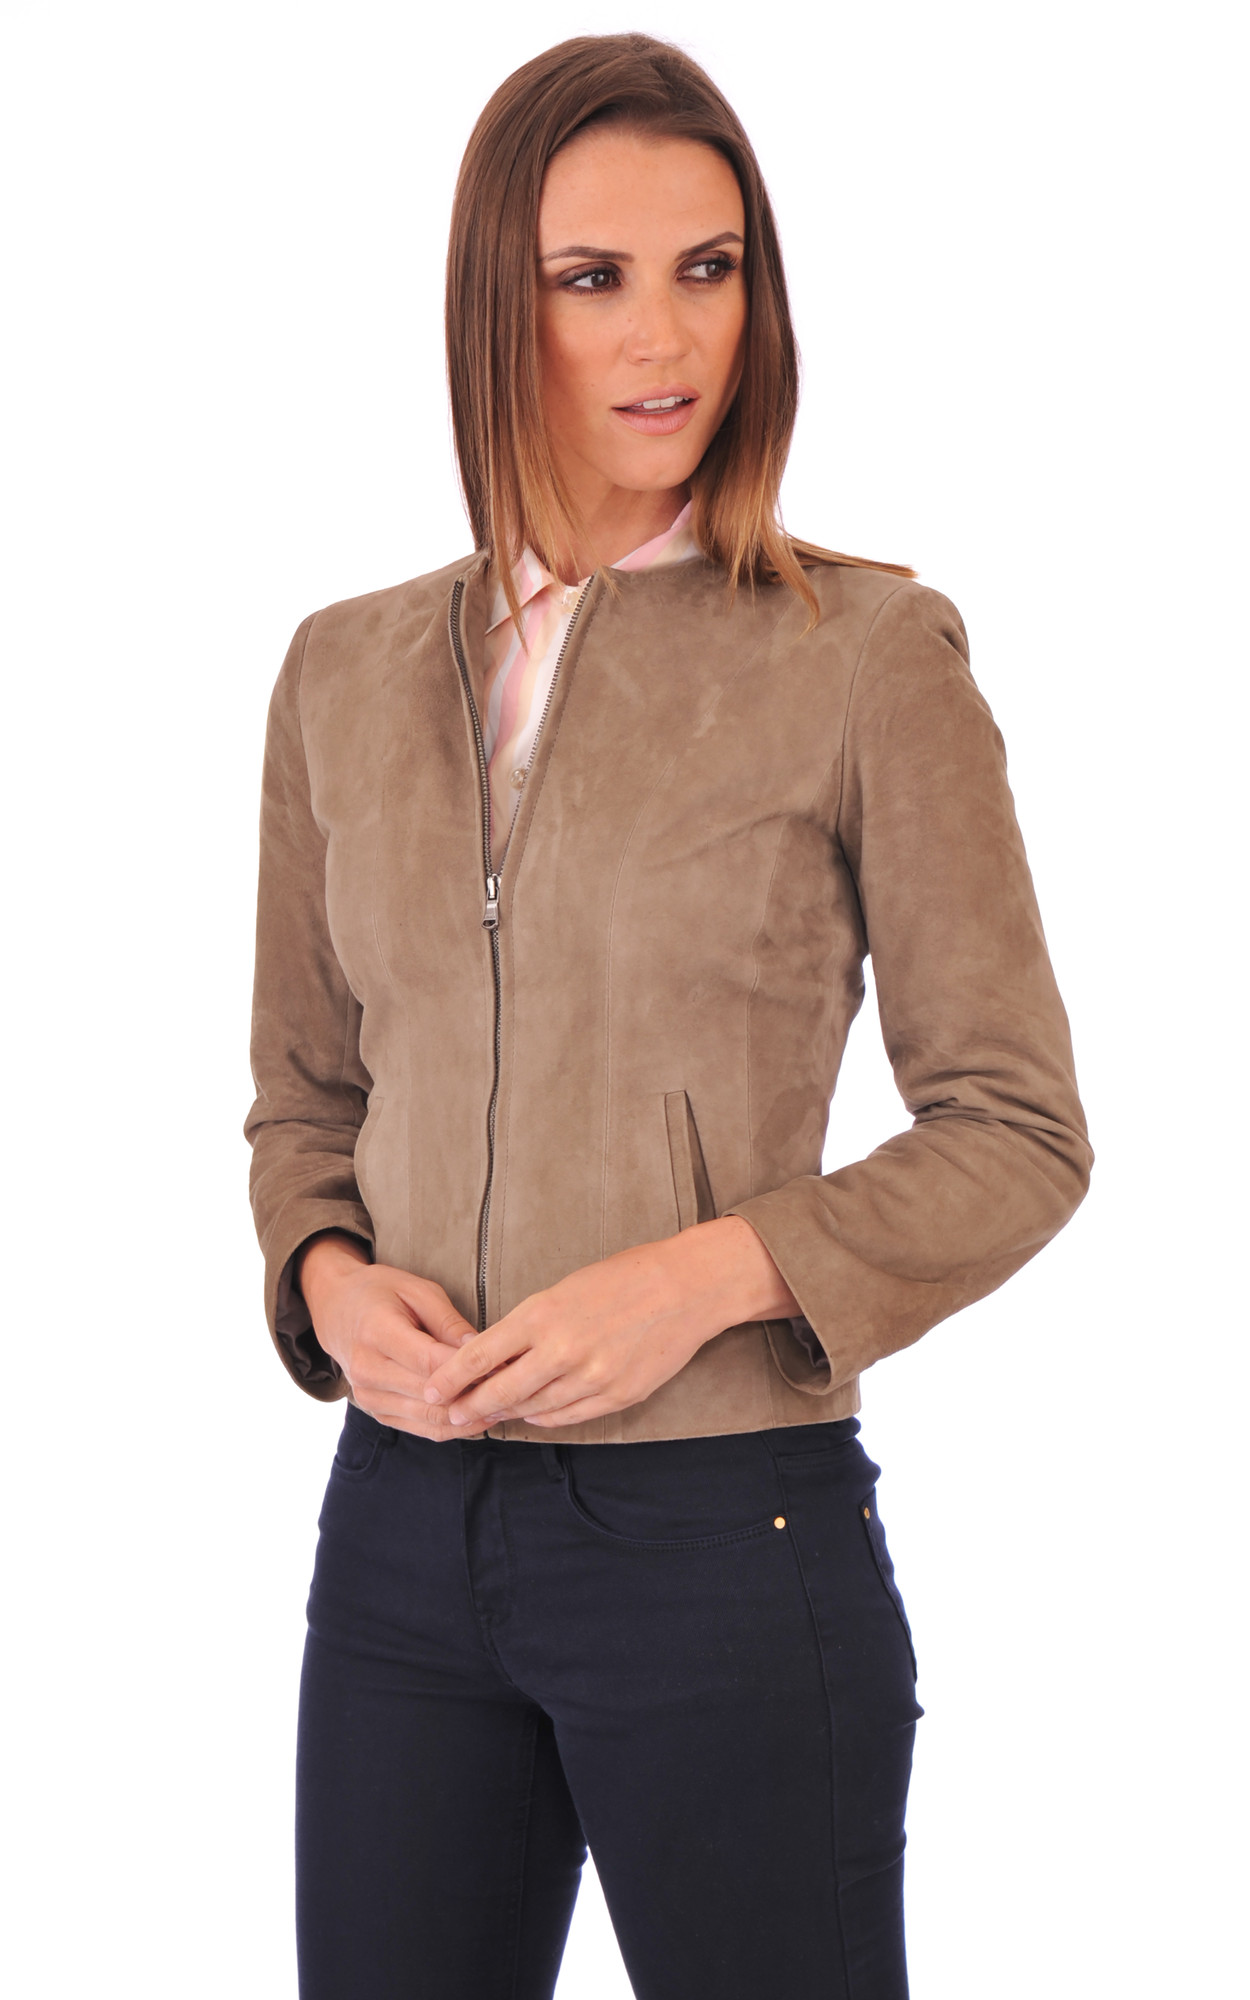 Blouson Aspect Daim Taupe Coupe Spencer1